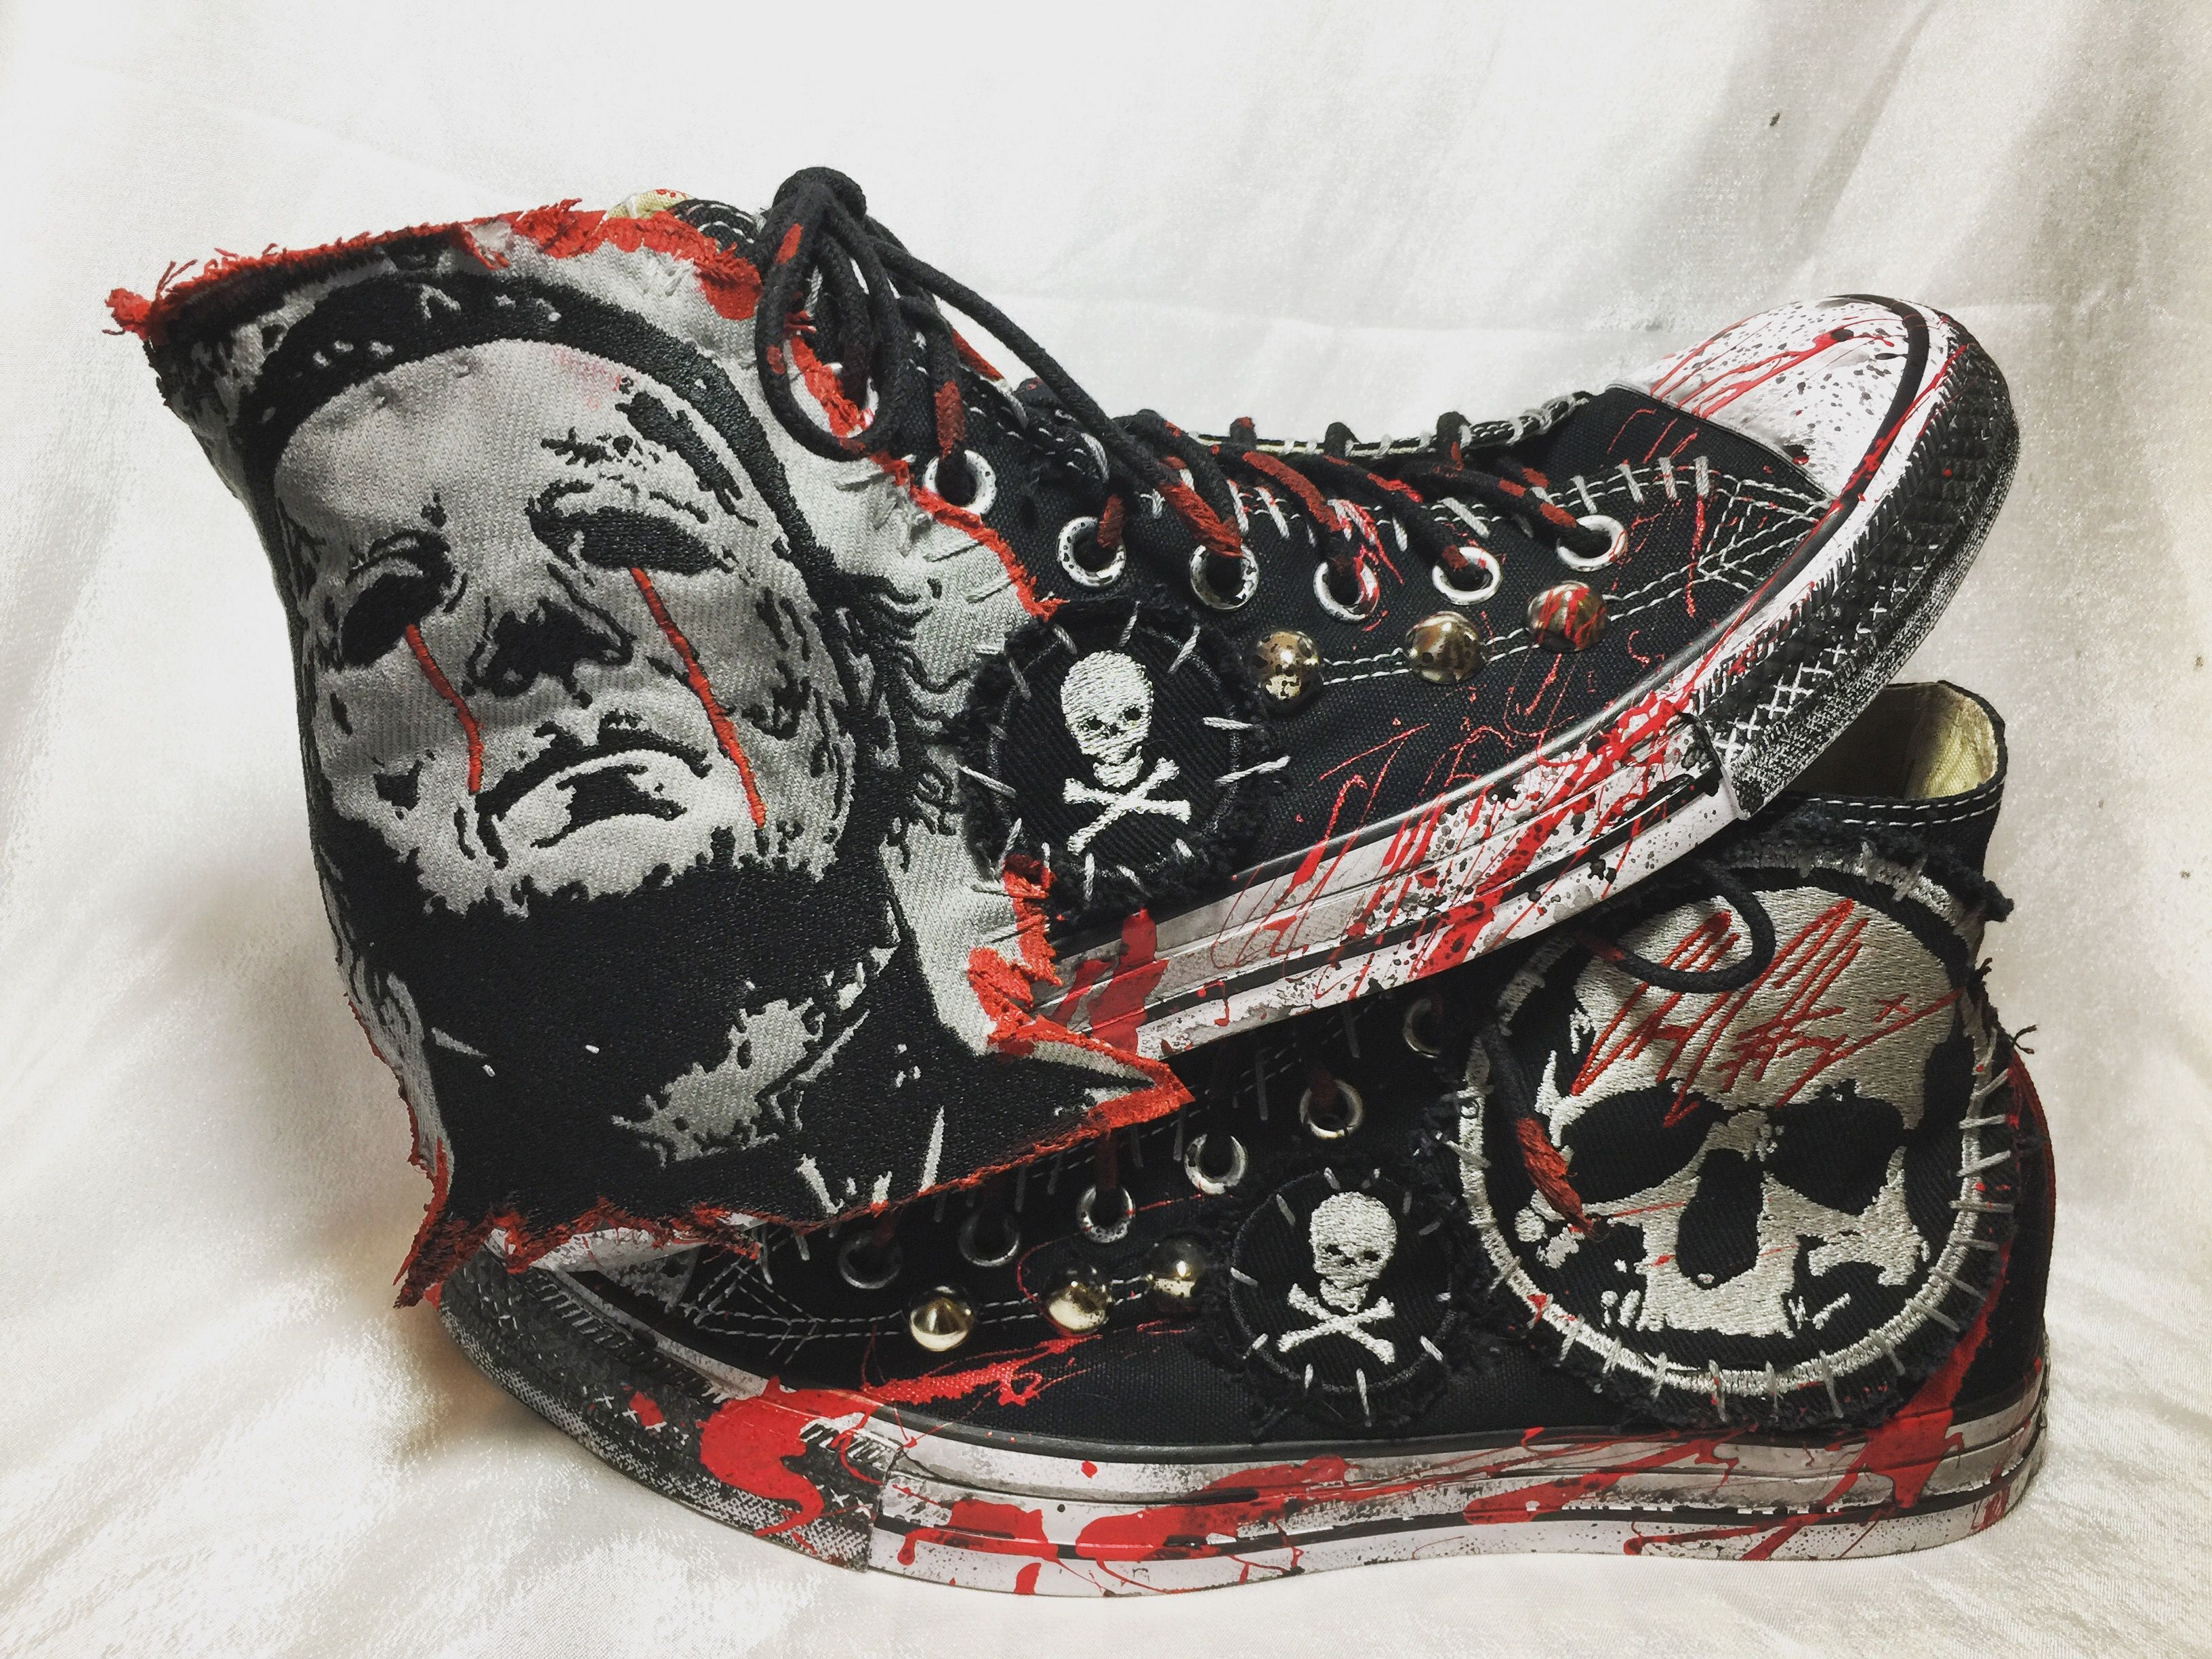 Blood of The Shape shoes. All Star Chuck Taylor Hi Top